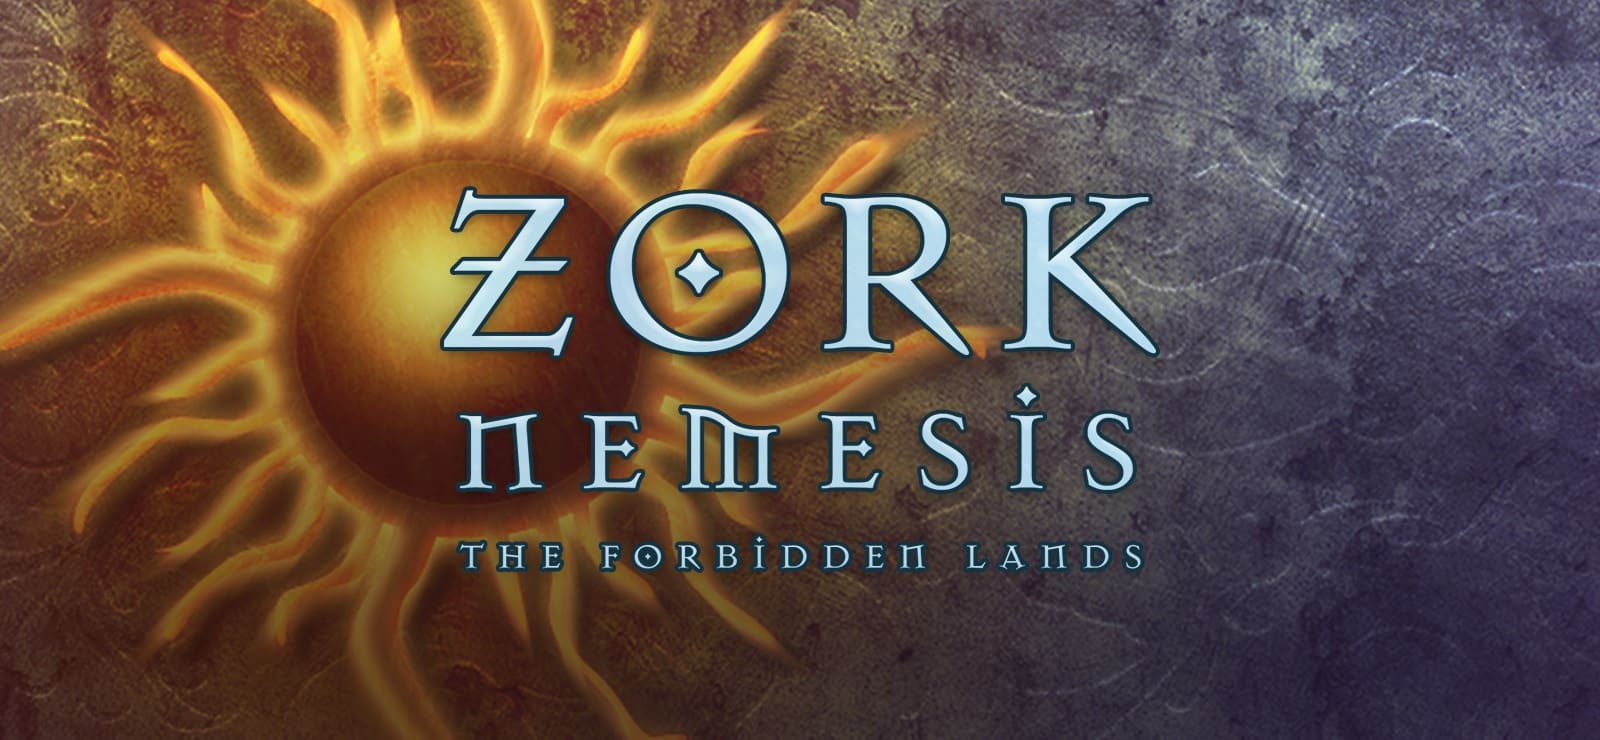 Zork Nemesis: The Forbidden Lands varies-with-device